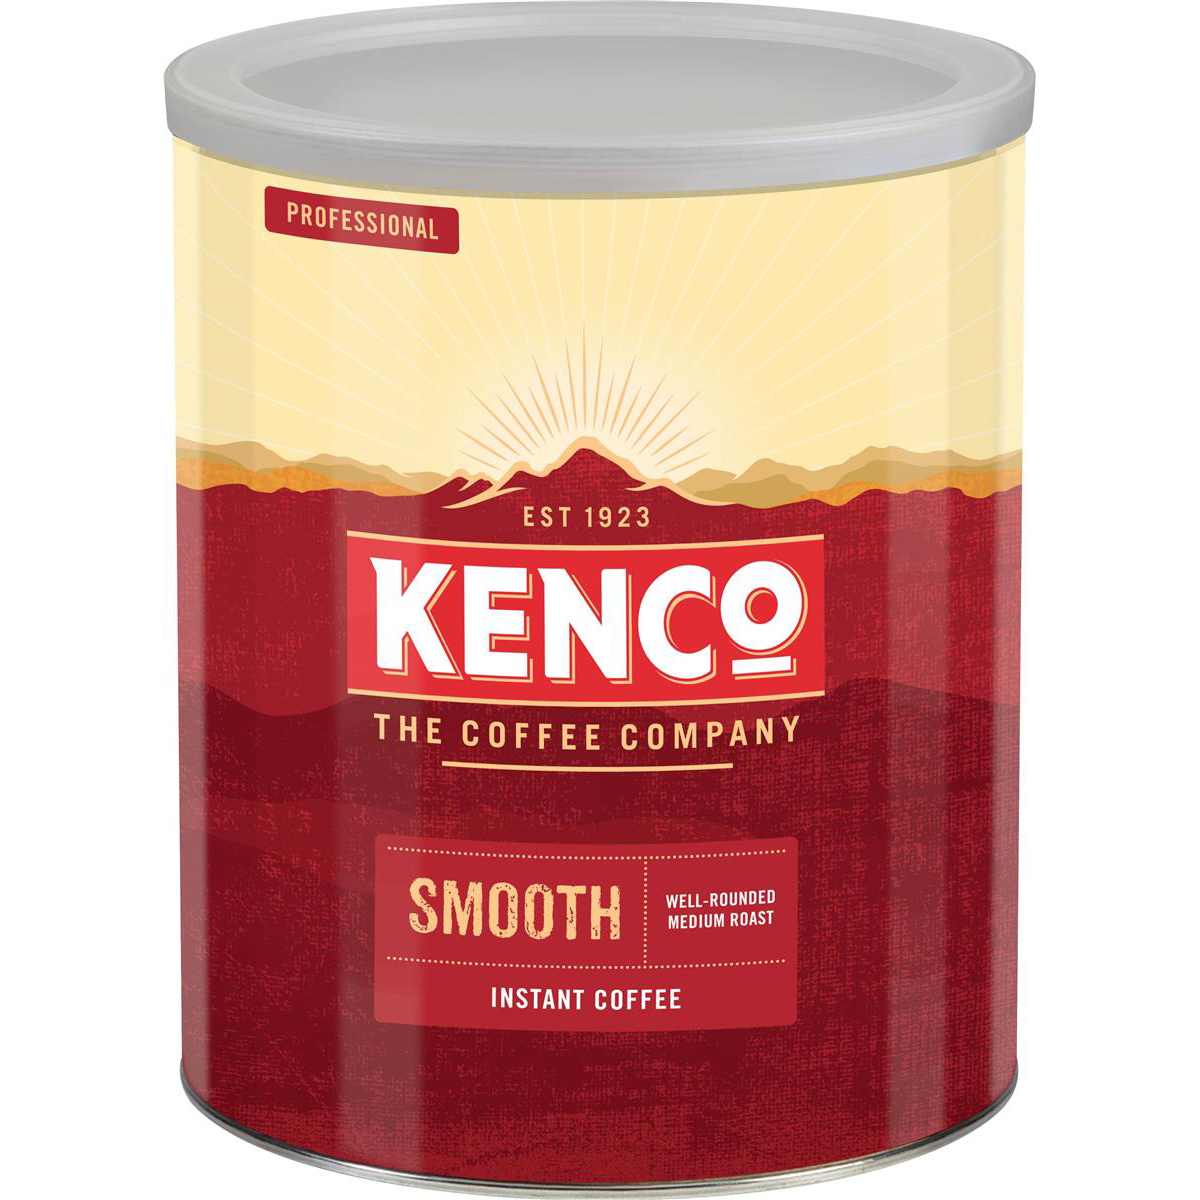 Coffee Kenco Really Smooth Instant Coffee Tin 750g Ref 4032075